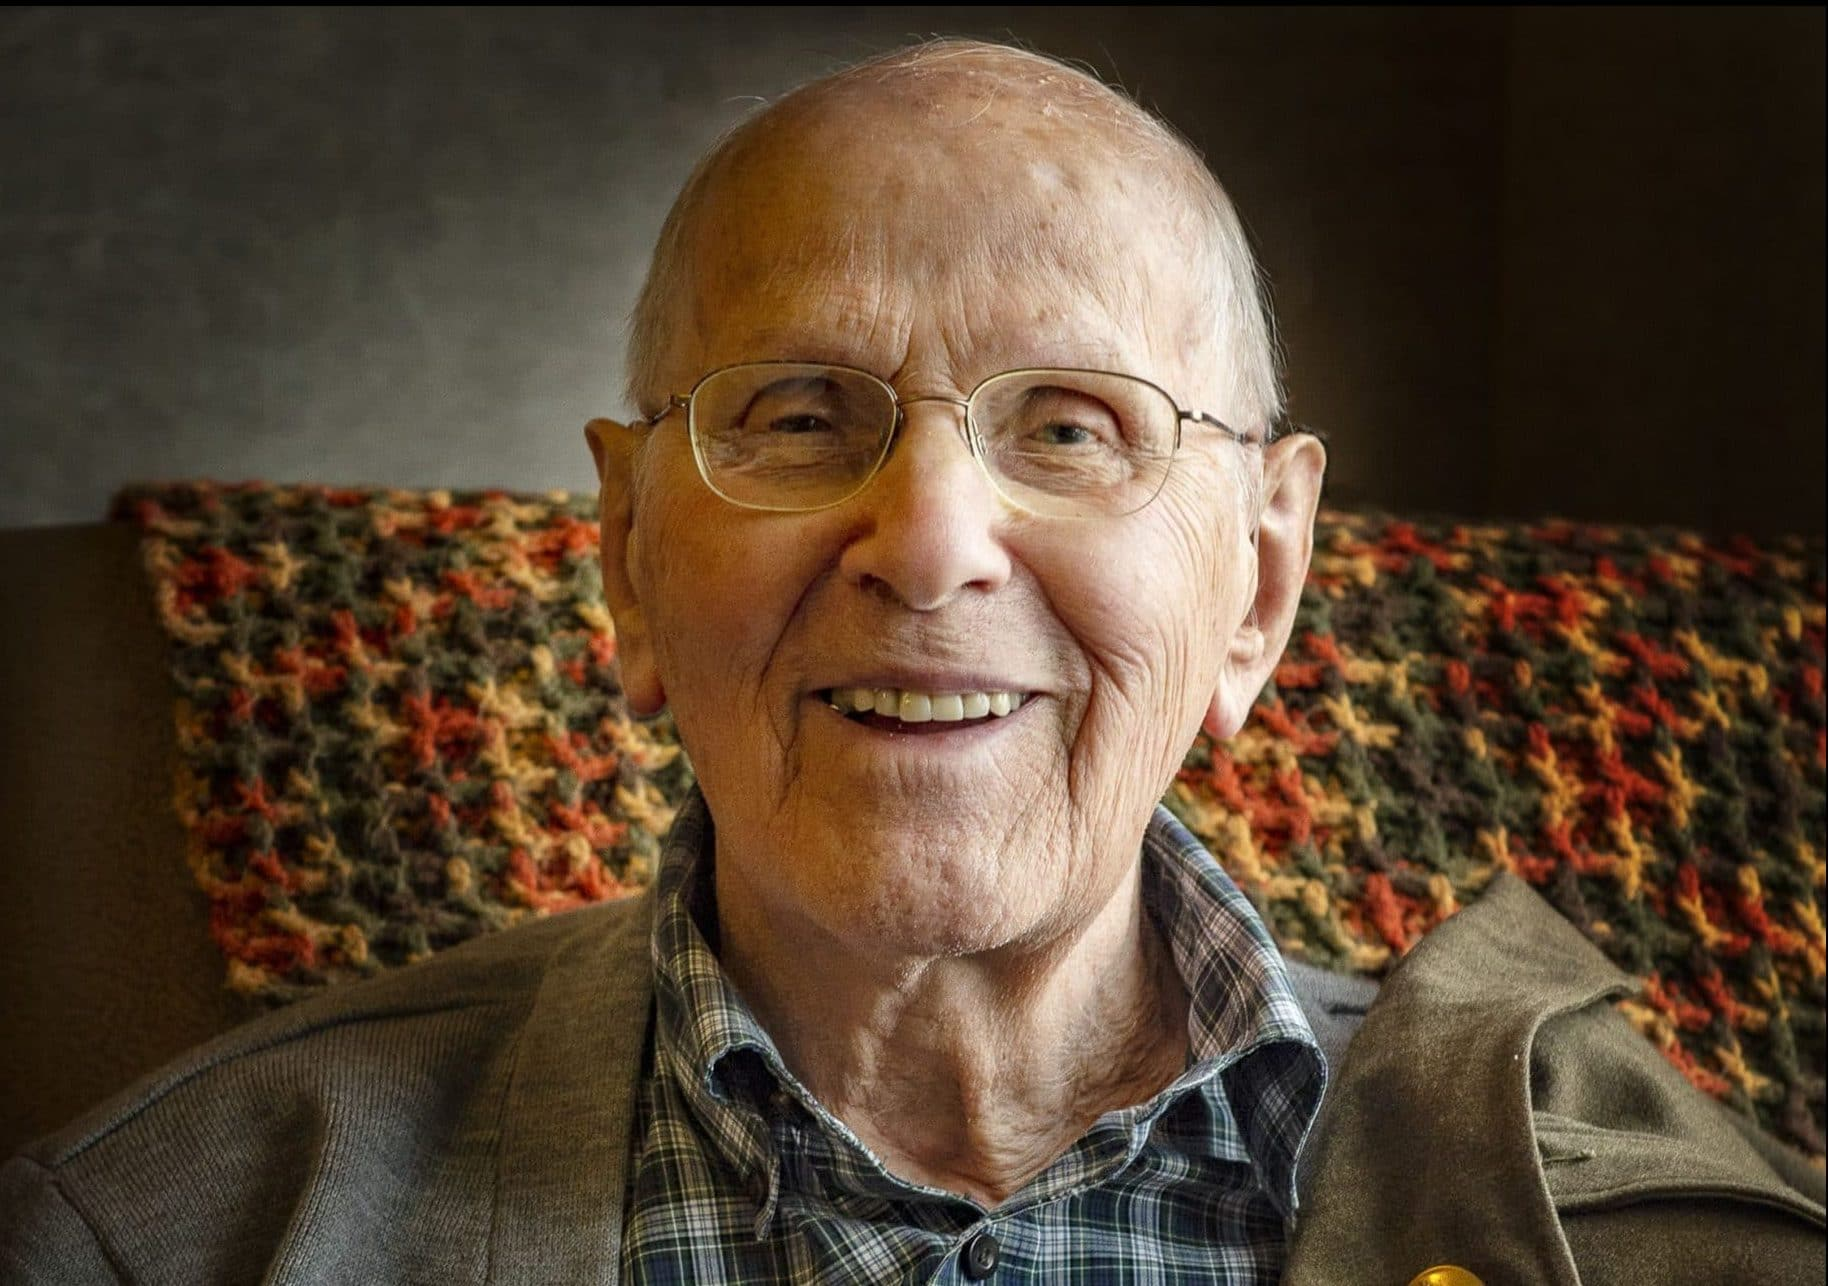 PA artilleryman, 97, says he was no World War II hero. His actions show otherwise.